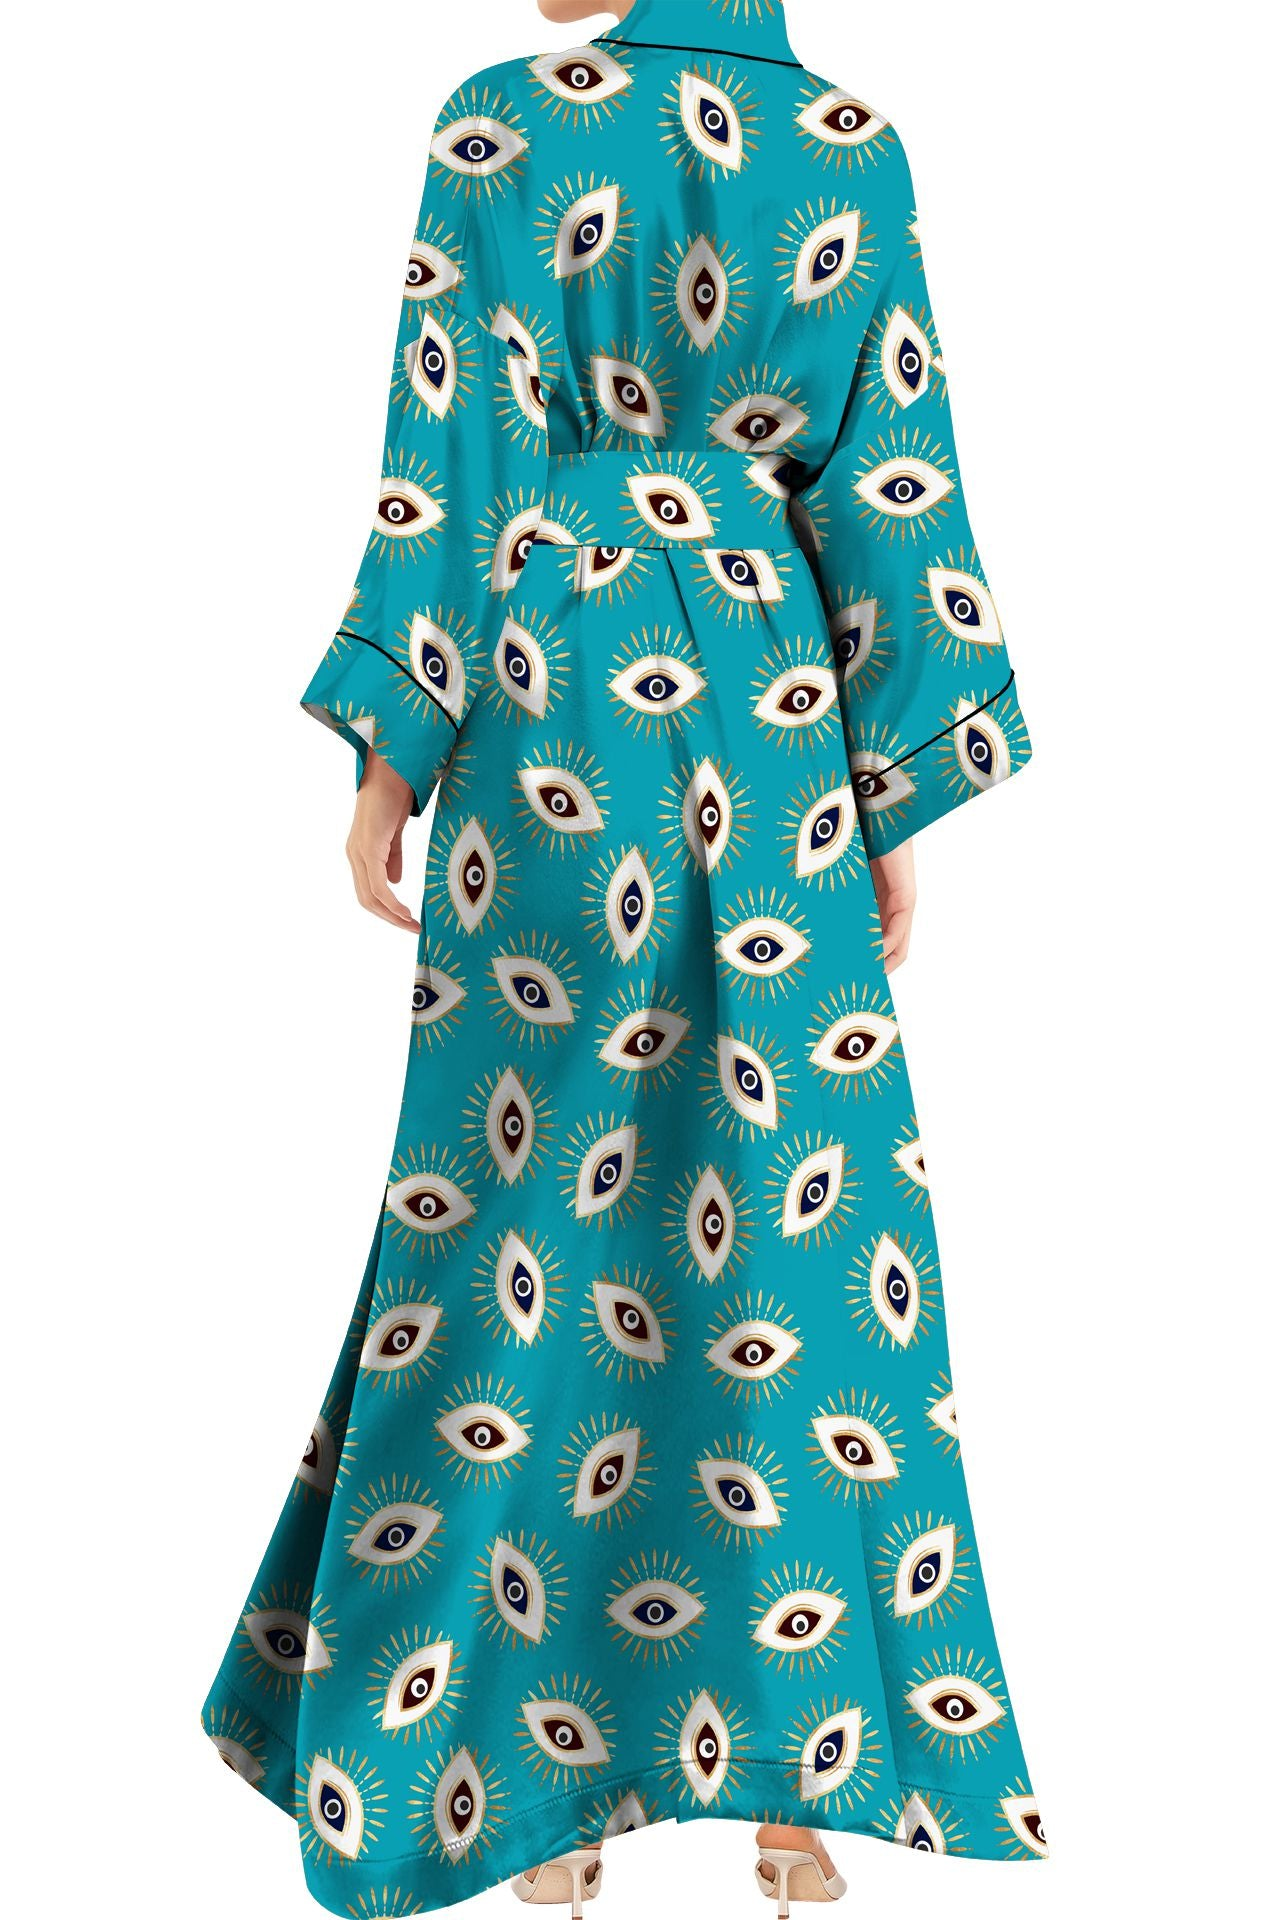 Made with Vegan Silk Long Kimono Robe Dress in Evil Eye Aqua